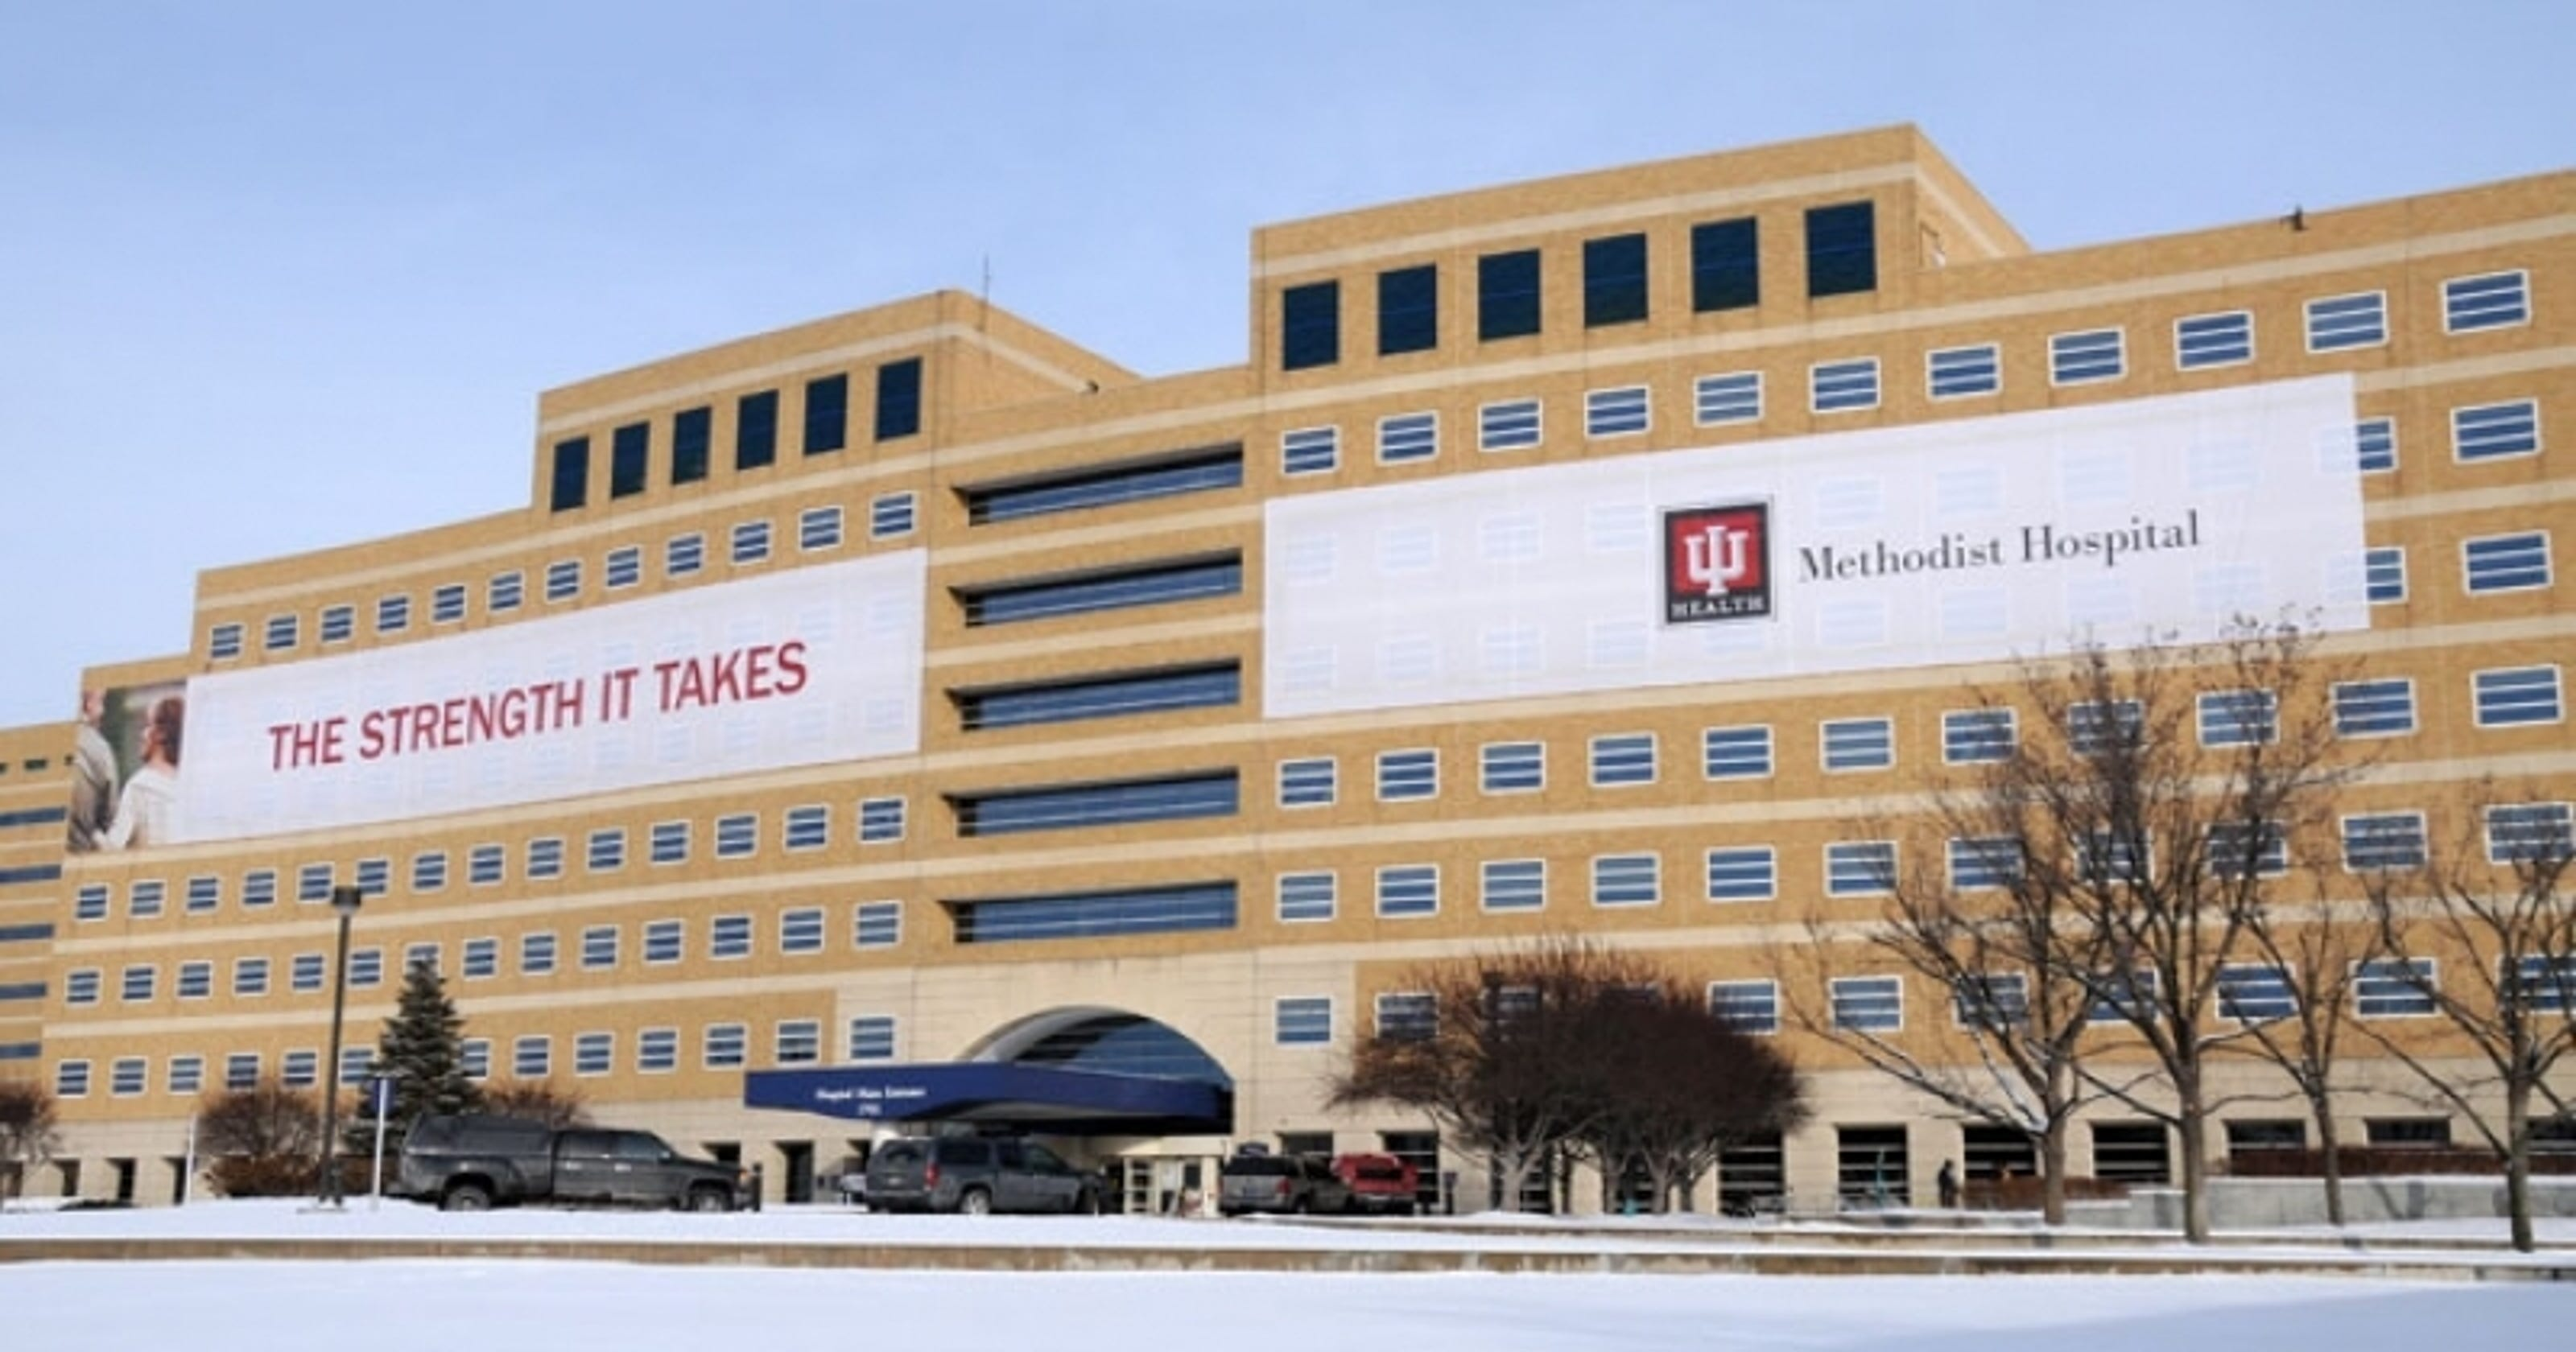 Patients trapped by IU Health, UnitedHealthcare contract feud